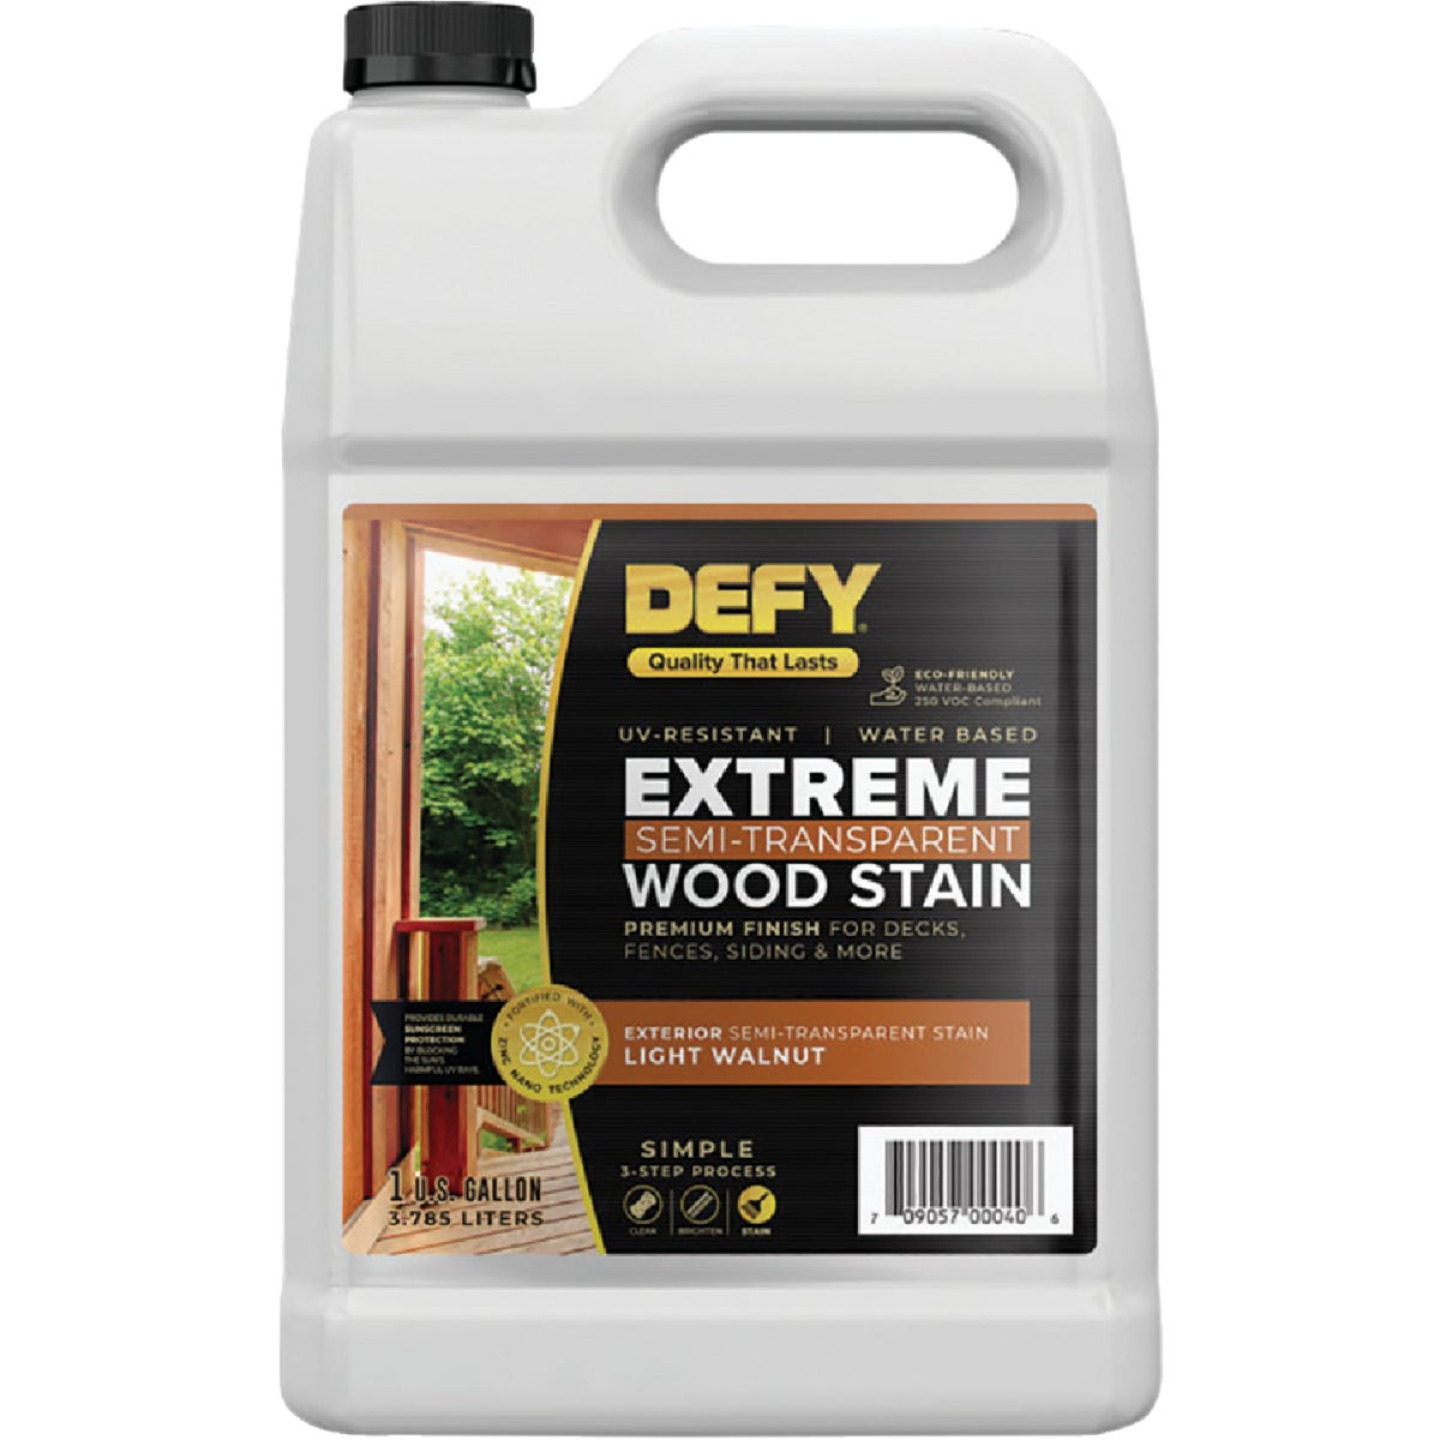 DEFY Extreme Semi-Transparent Exterior Wood Stain, Light Walnut, 1 Gal. Bottle Image 1